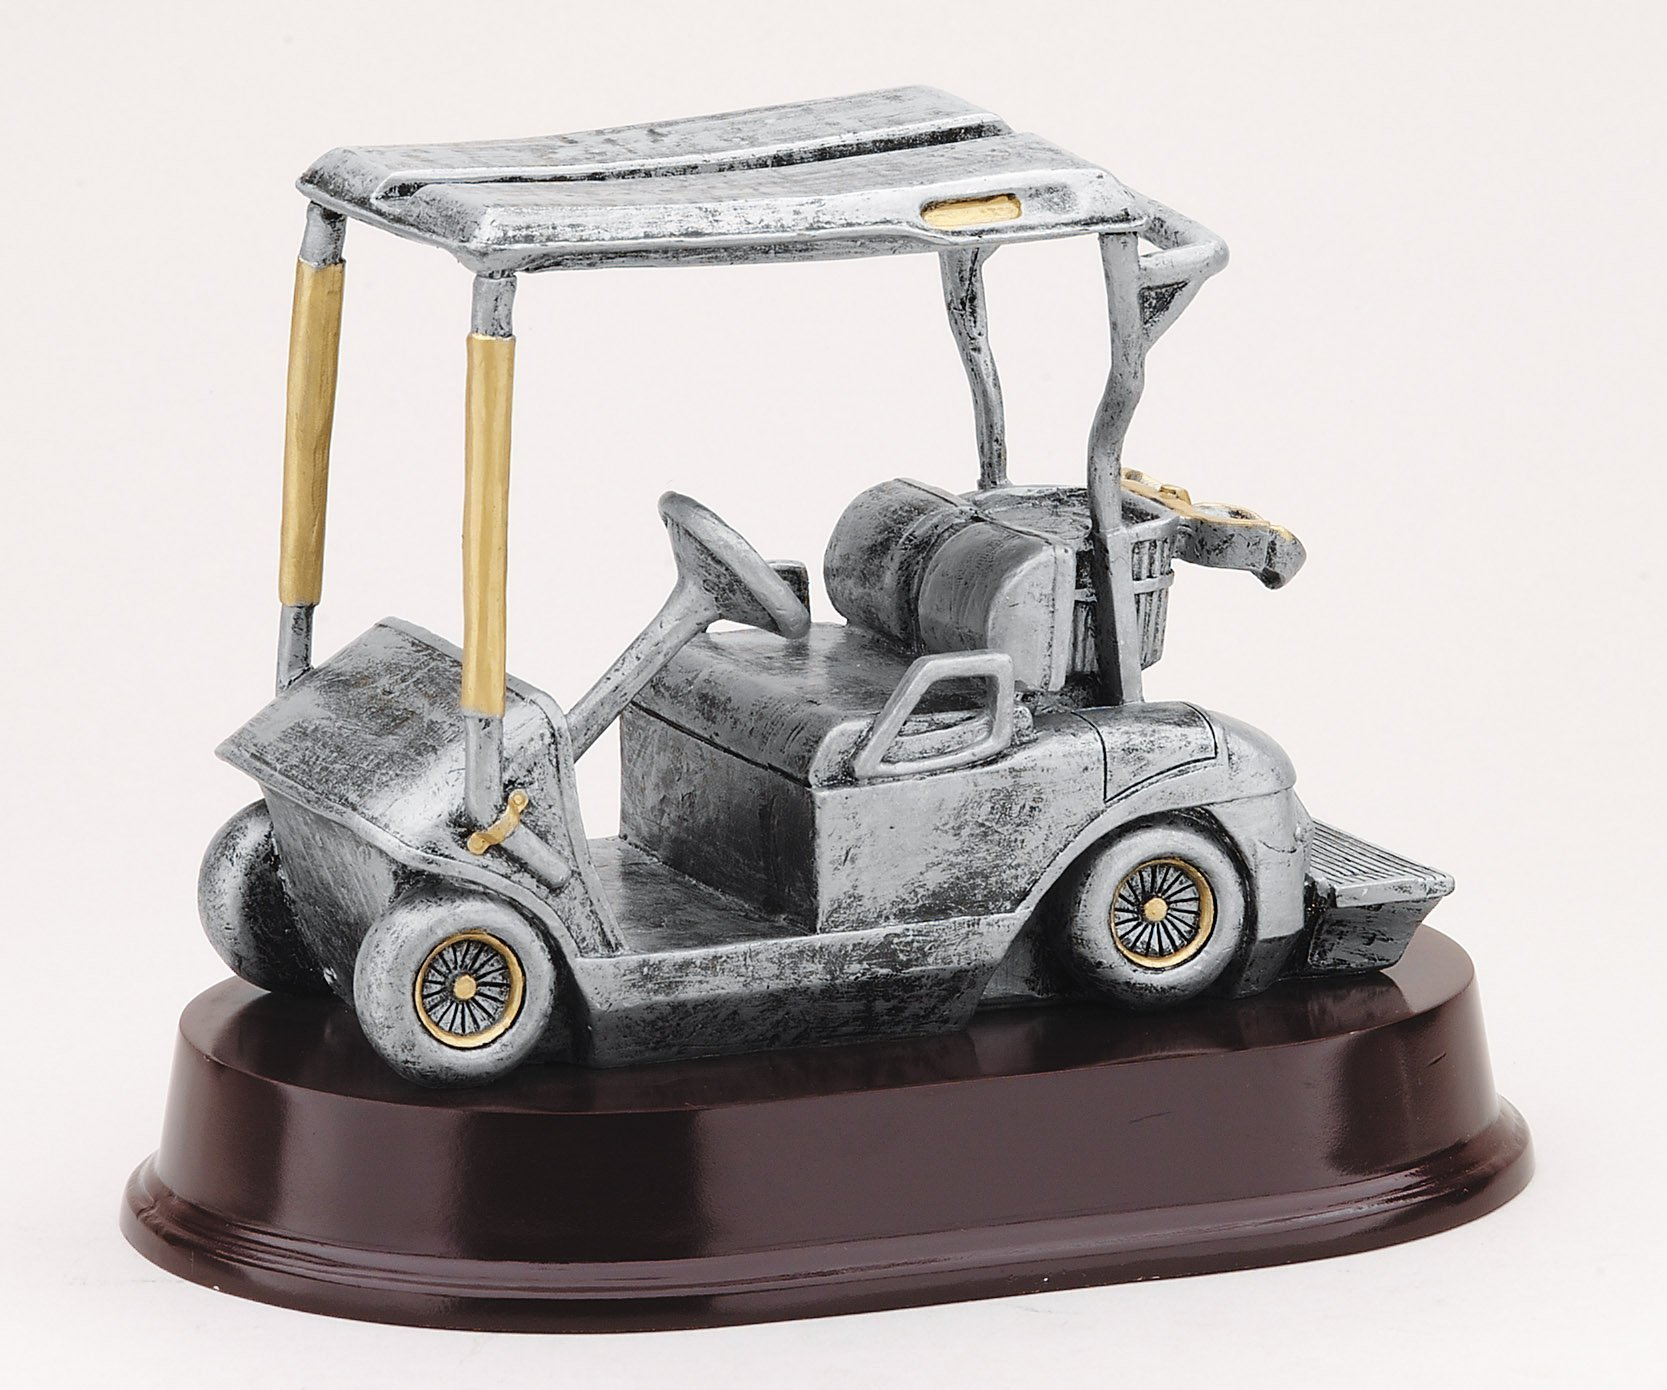 Etch Workz Customize Golf Award Trophy - RX1520SG Series Resin Golf Cart Trophy - Includes 3 Lines of Engraving - Gold Plated & Personalized Free